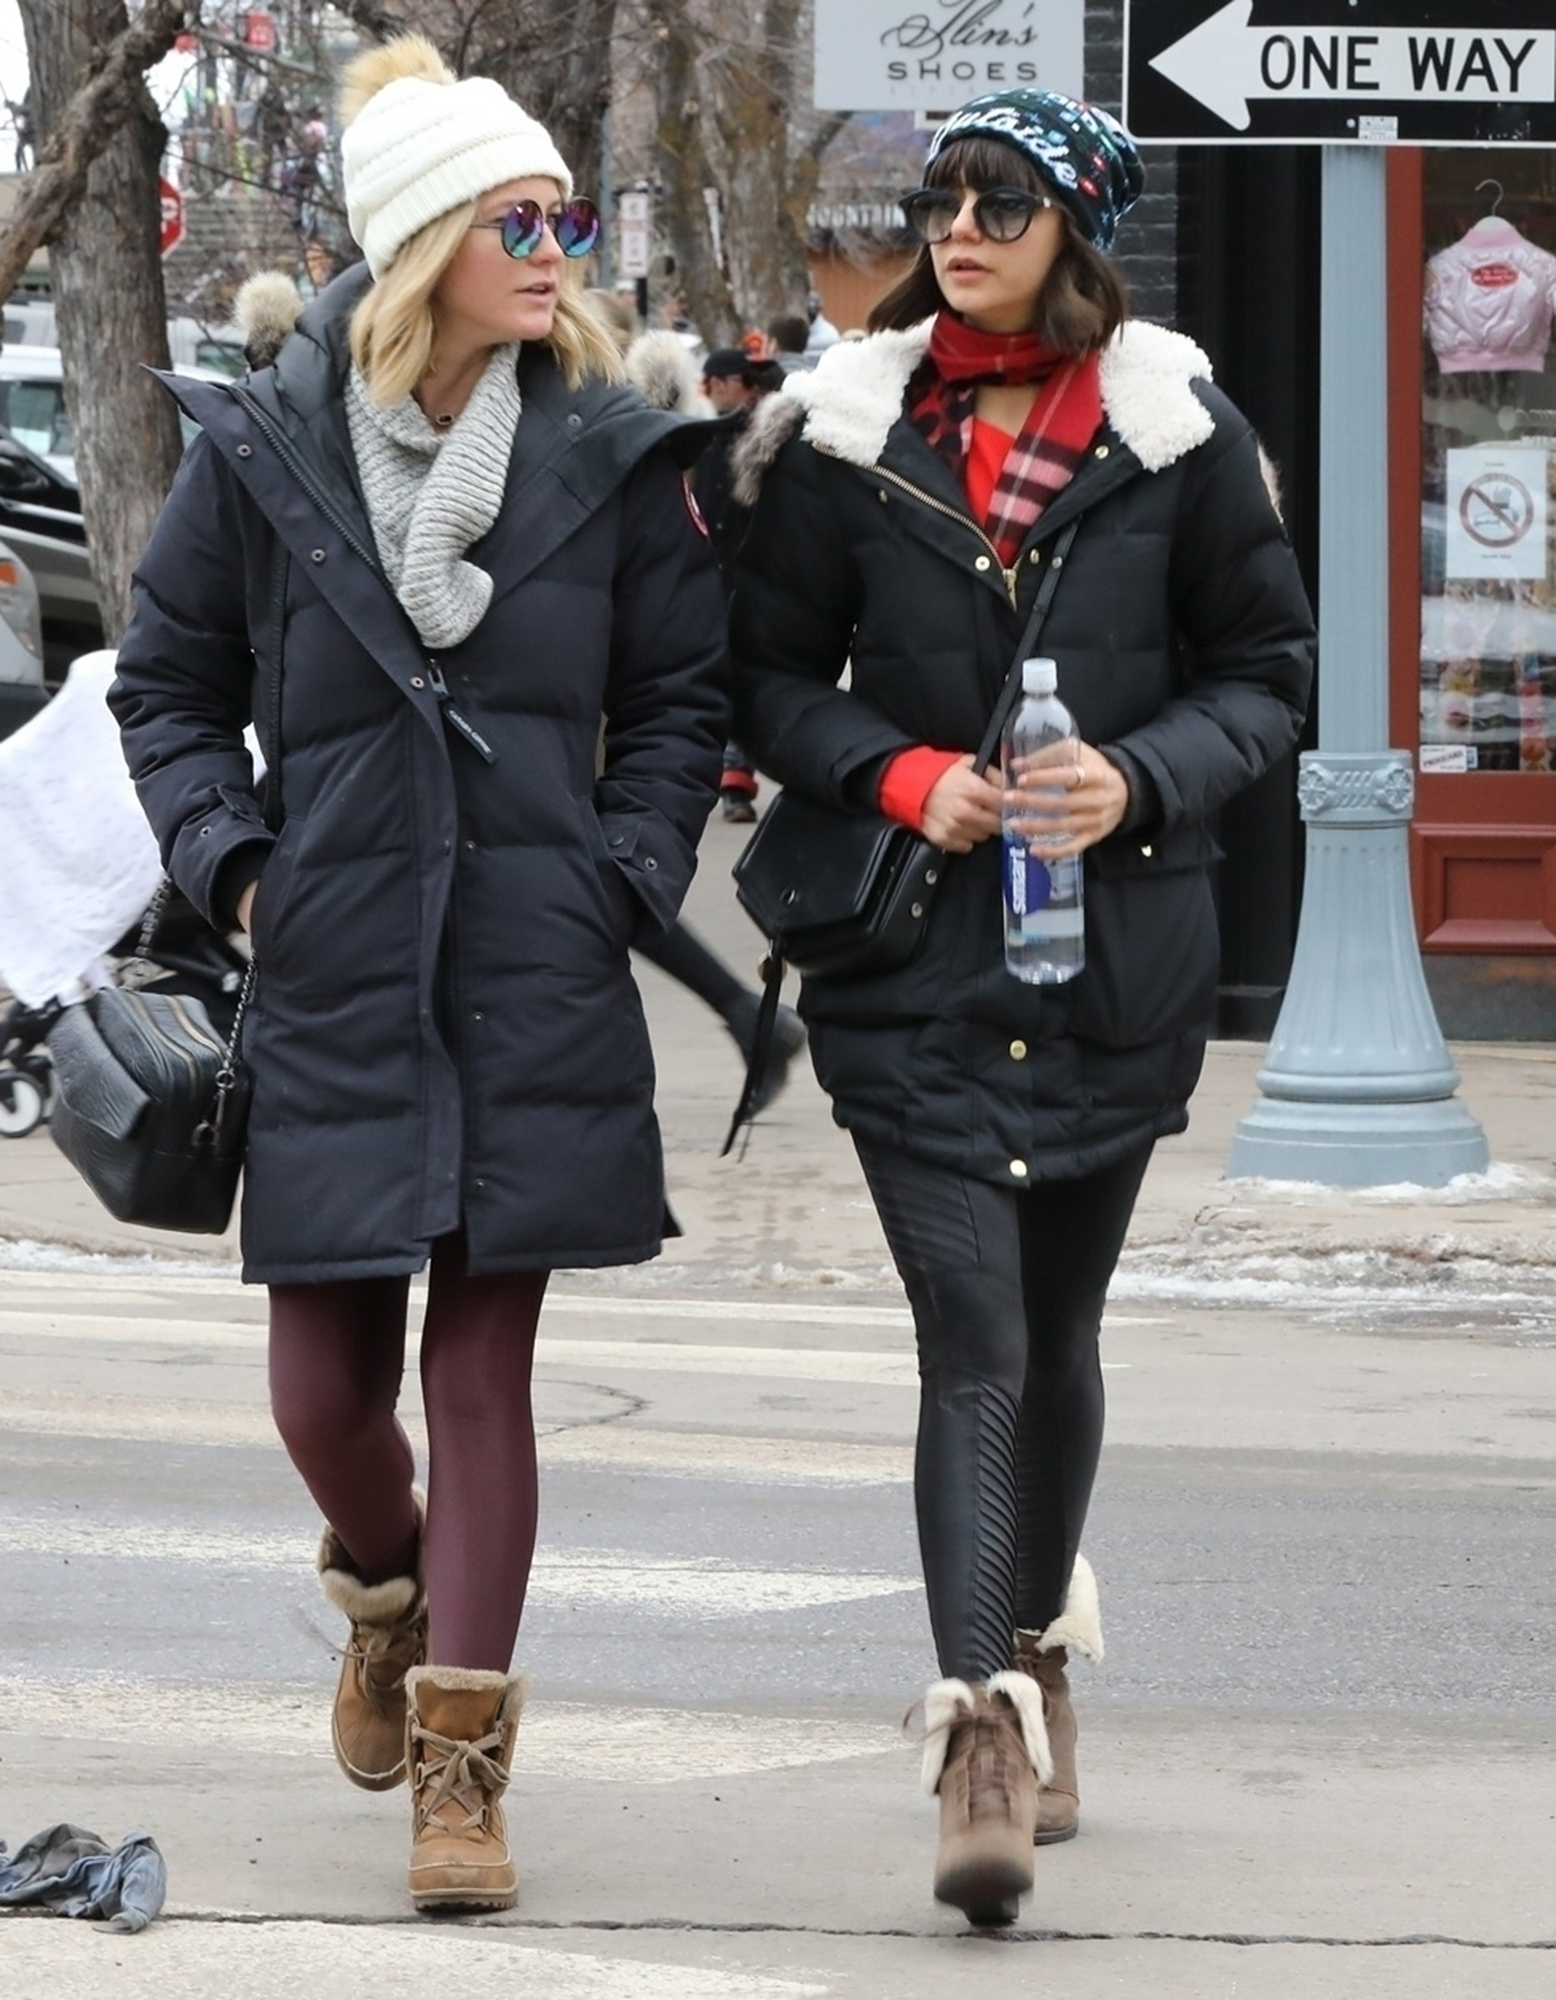 *EXCLUSIVE* Nina Dobrev explores Aspen with friends while on a Winter getaway